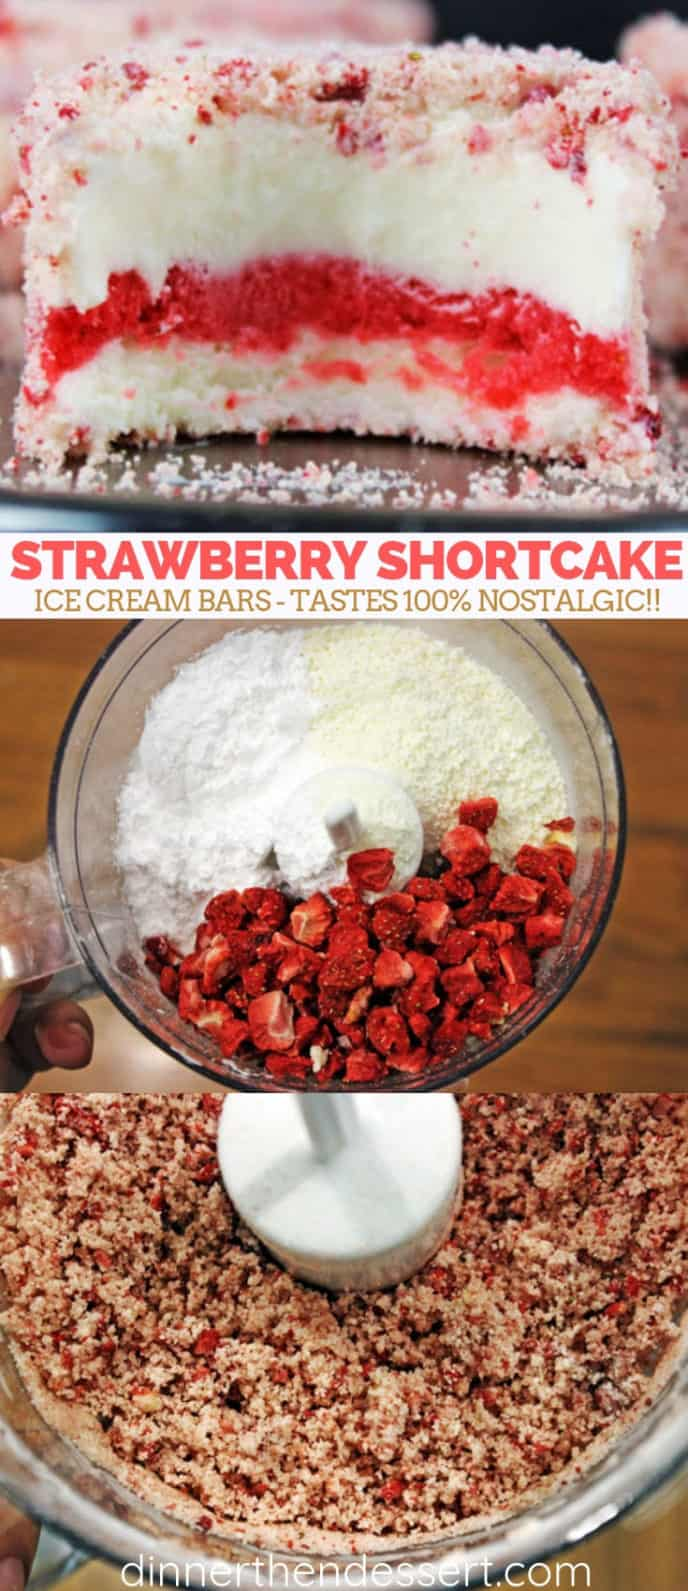 Good Humor Copycat Strawberry Shortcake Ice Cream Bars